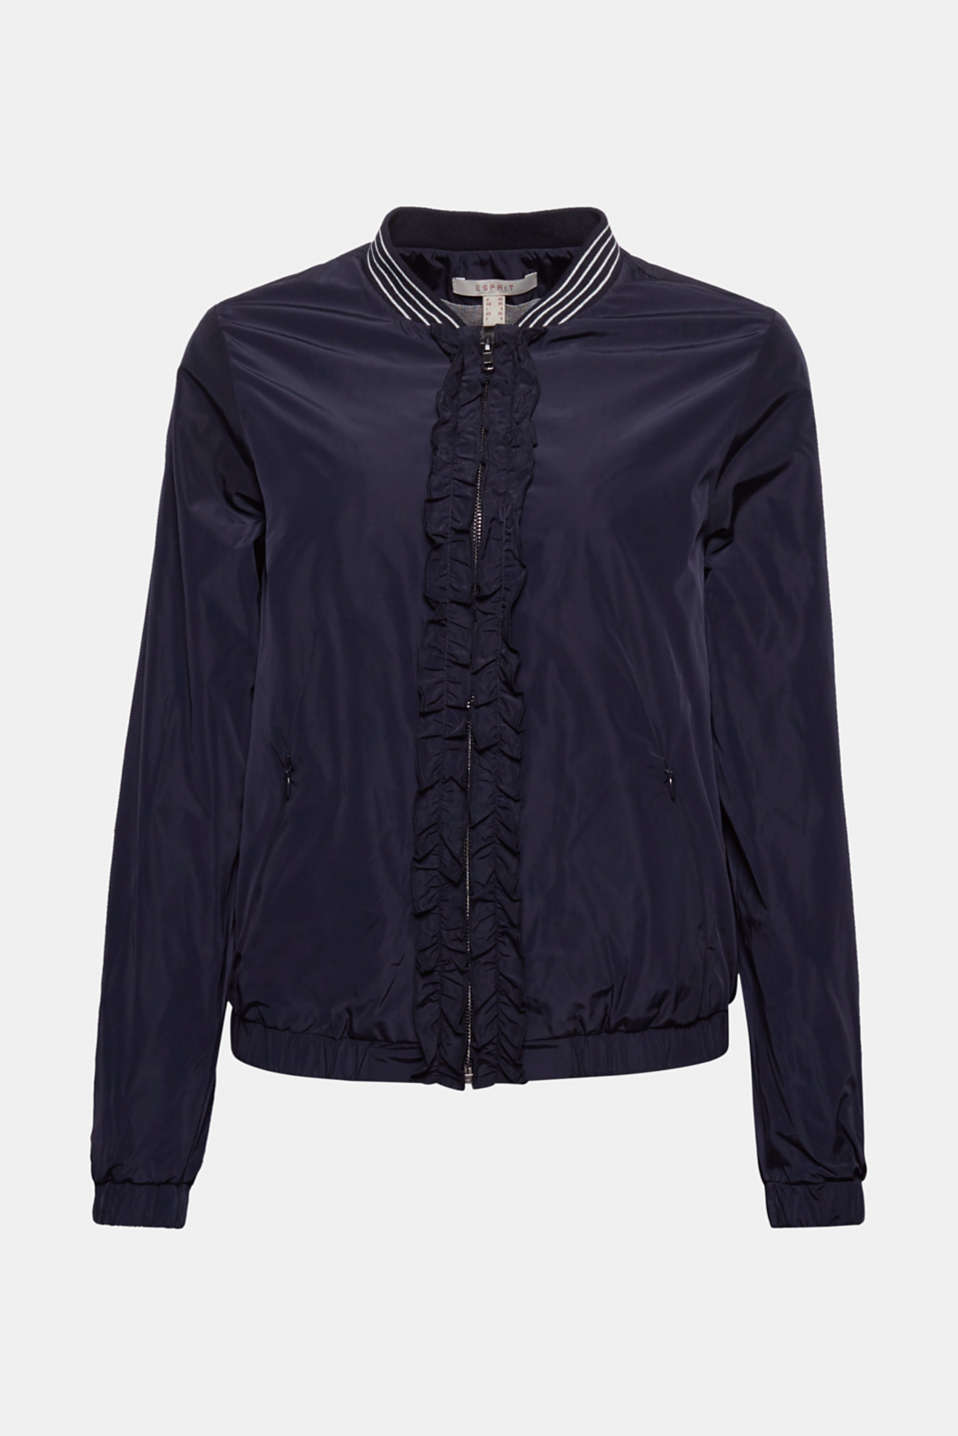 Sporty meets romantic with this lightweight bomber jacket made of smooth nylon with a ruffle trim on the zip!